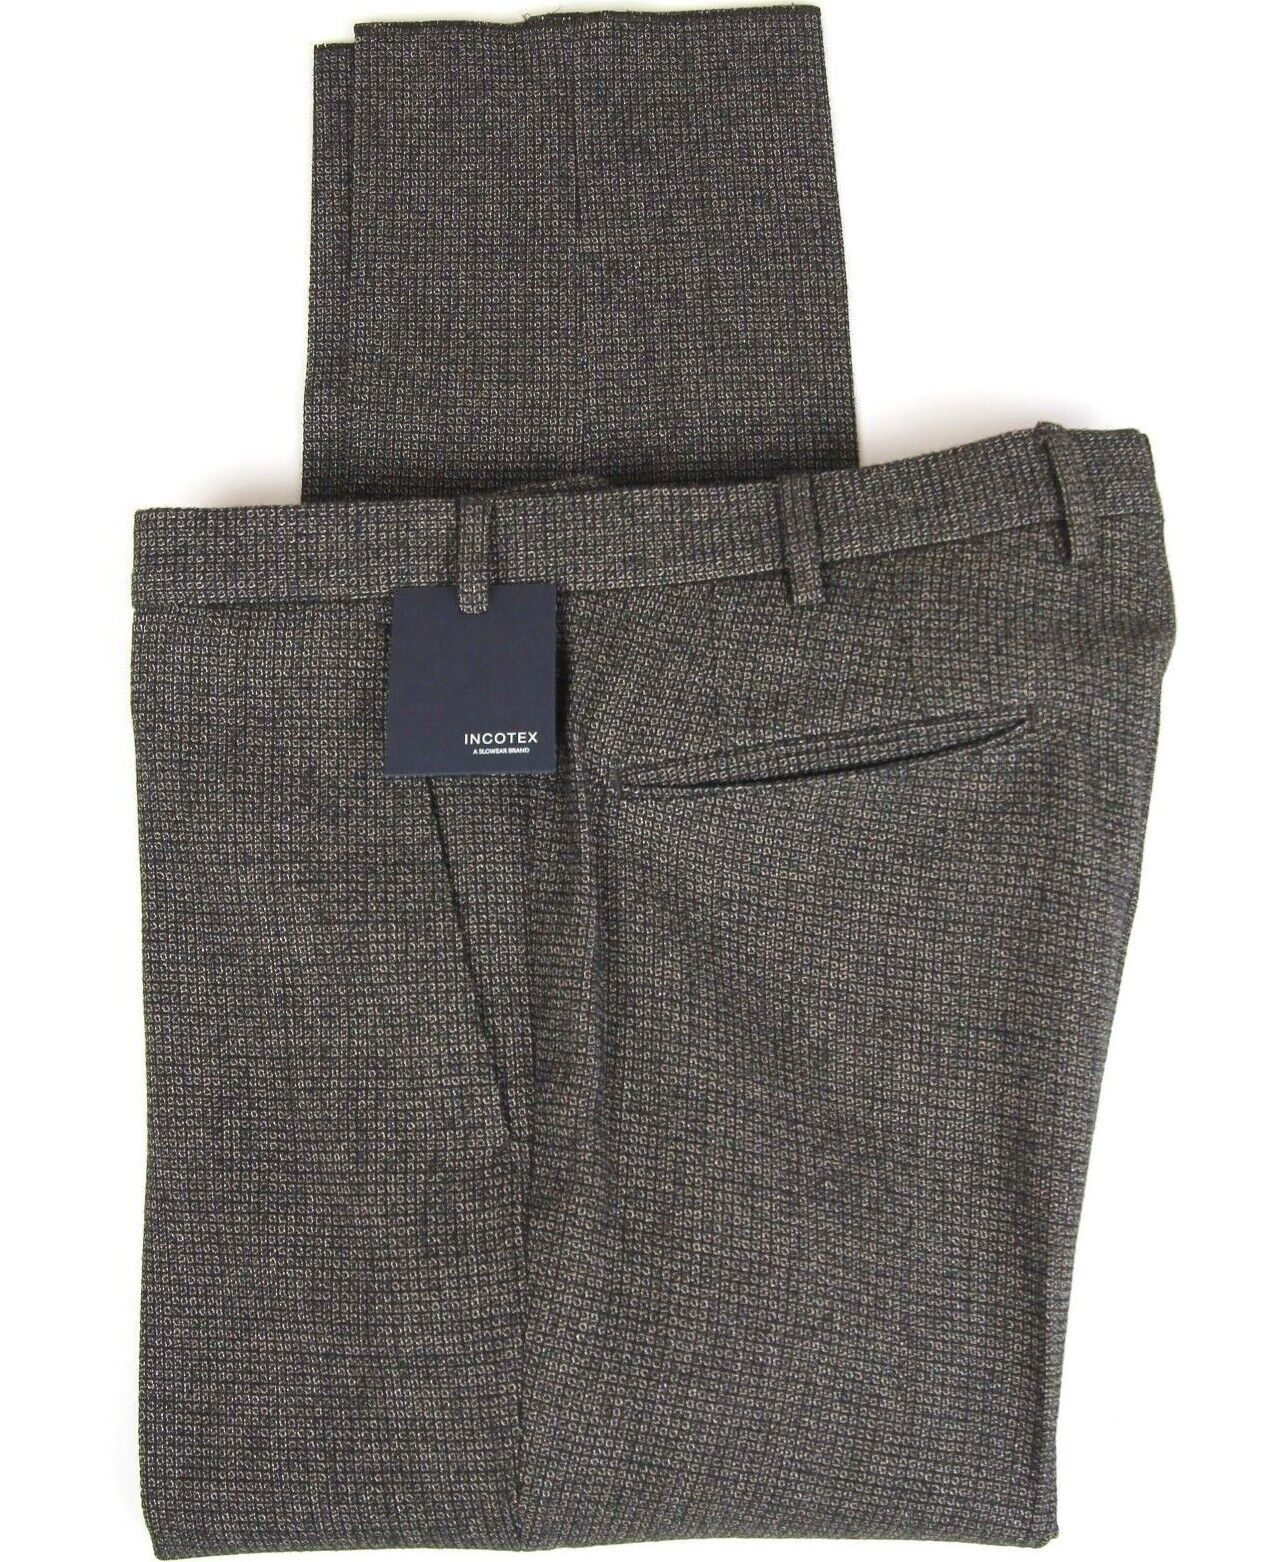 New Incotex Dress Pants Slim Fit Size 34 (50 EU) NWT